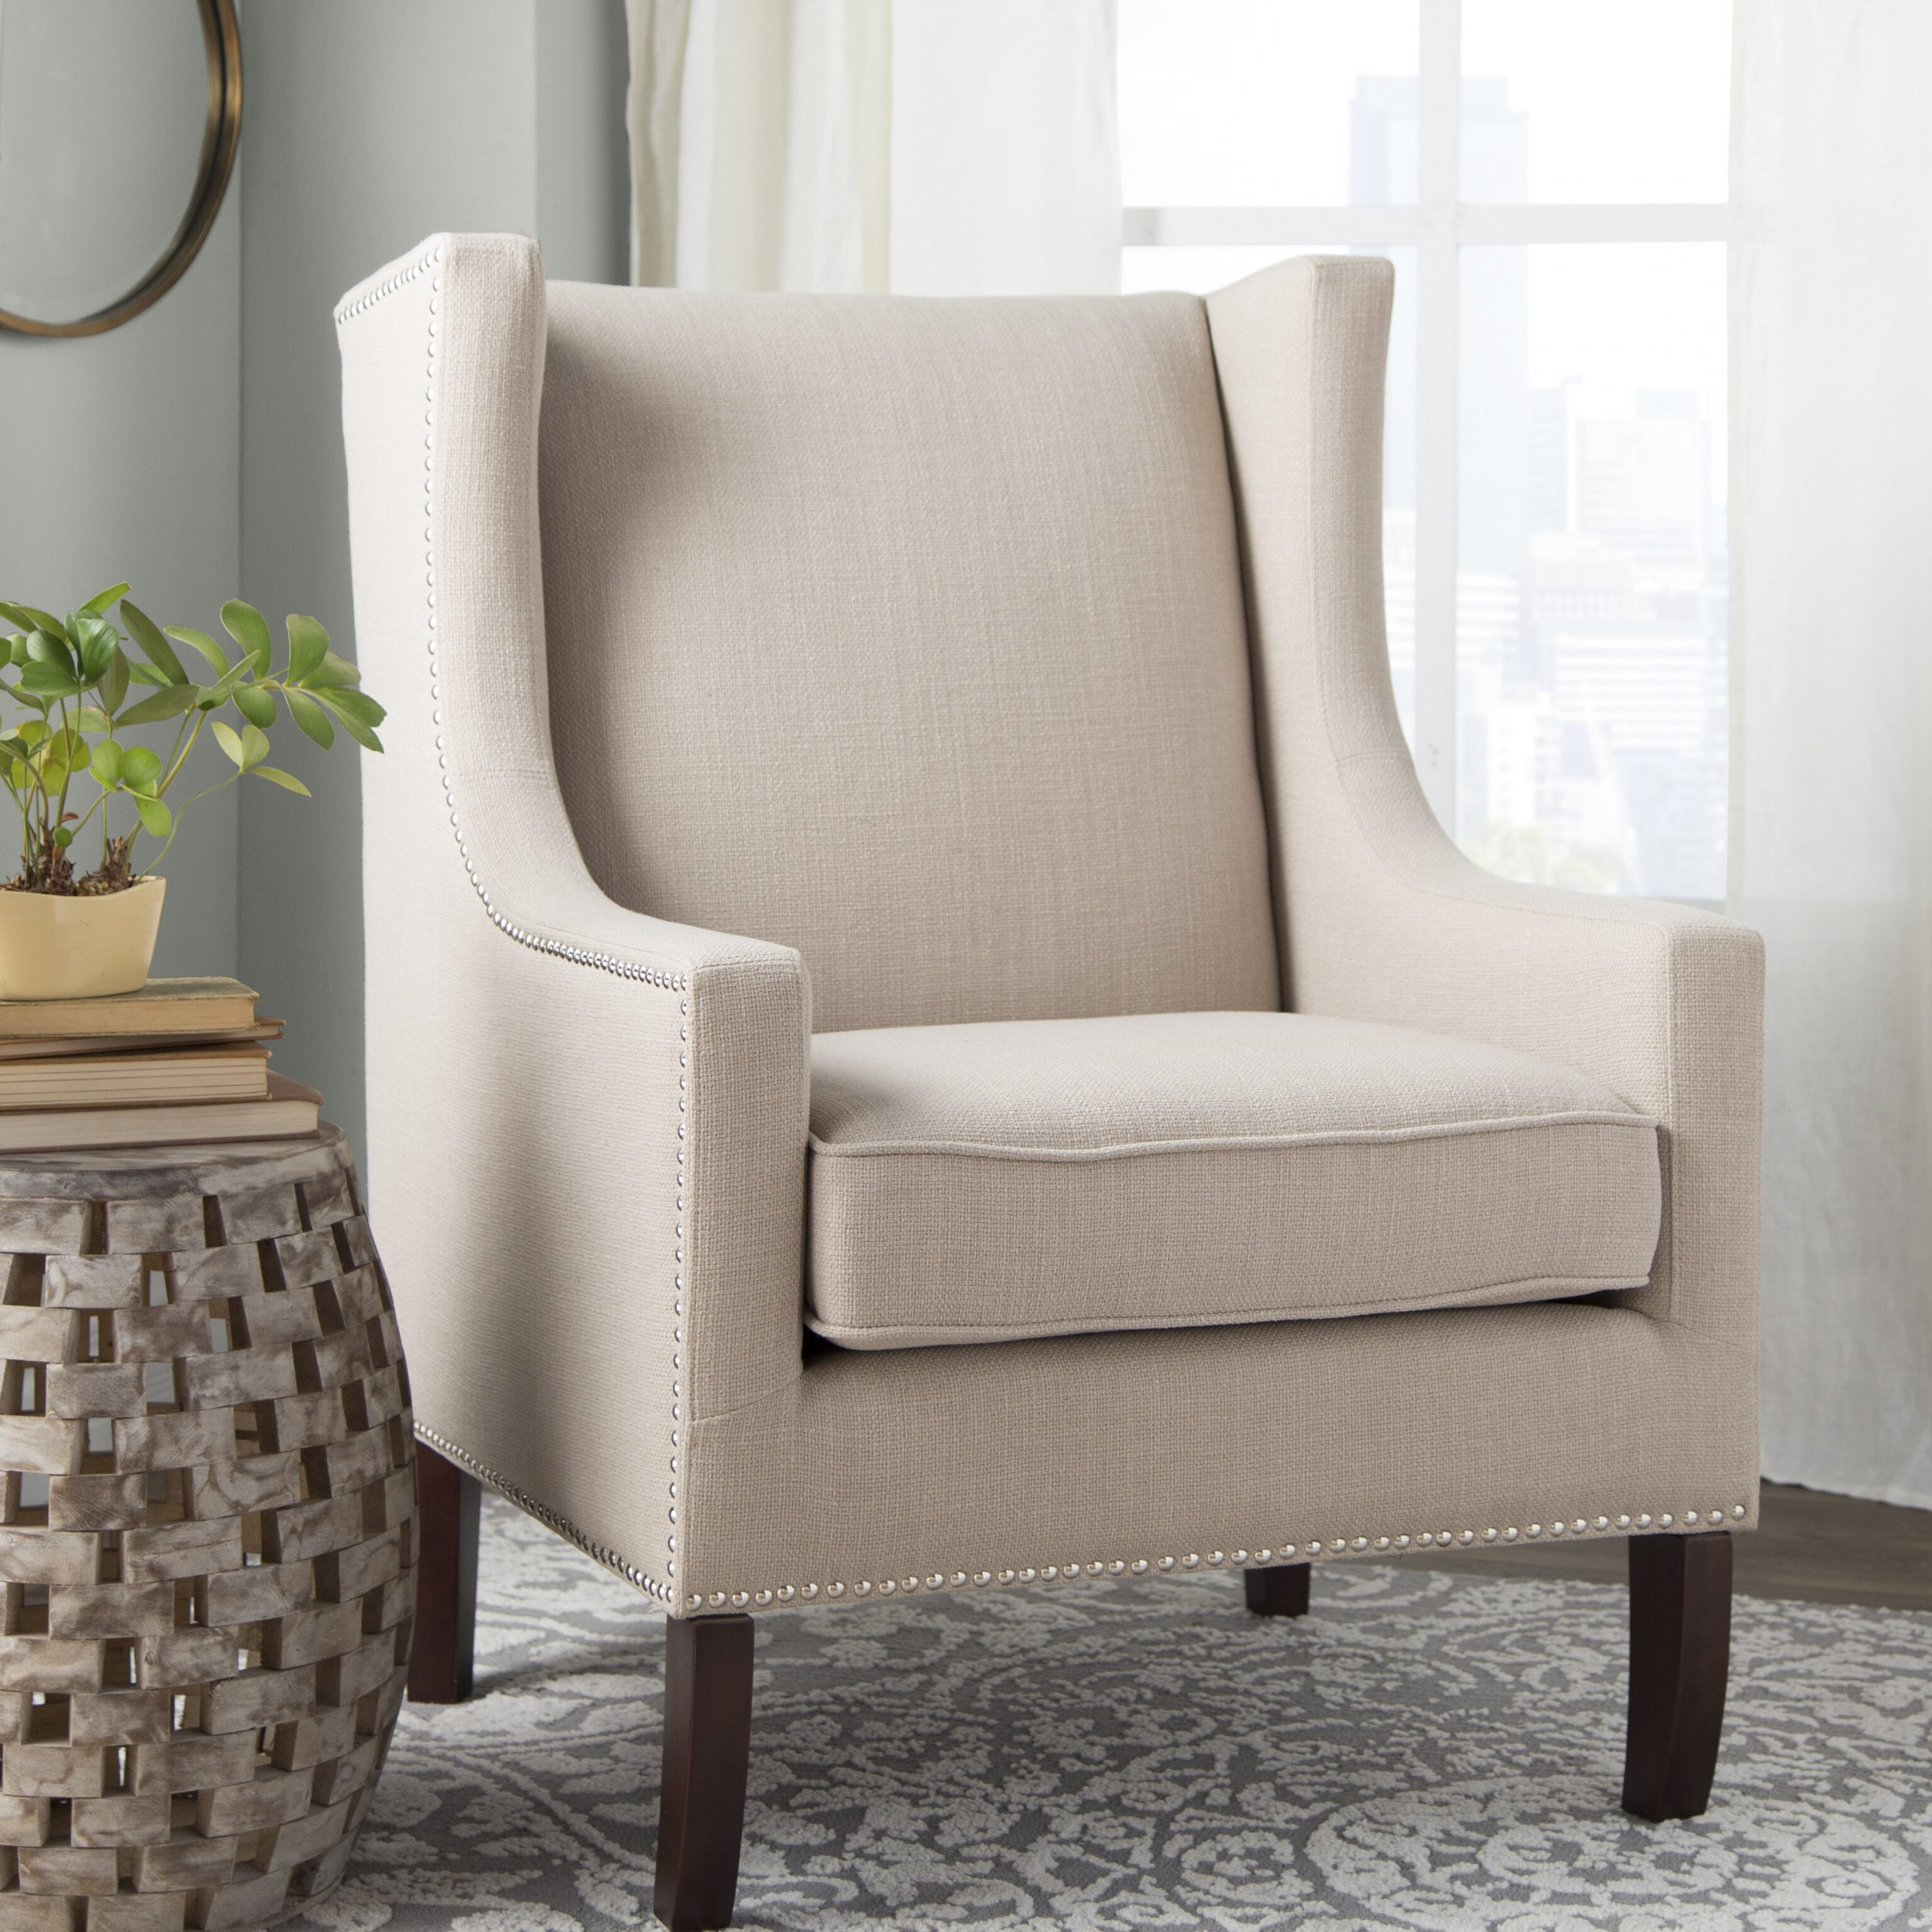 Wayfair Pertaining To Preferred Bouck Wingback Chairs (View 16 of 20)